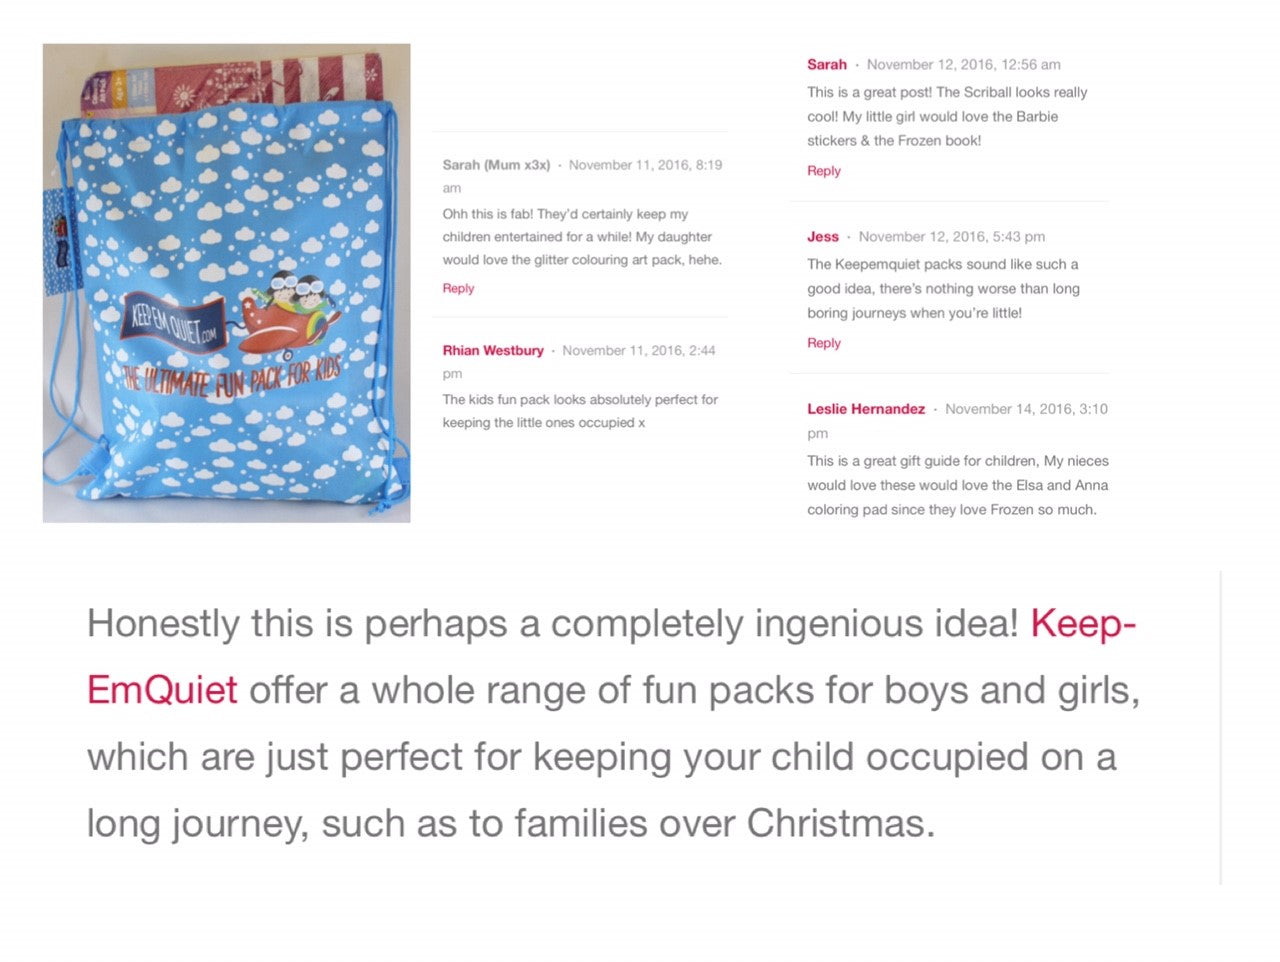 lifebreakdown ukblogger pblogger recommends keepemquiet